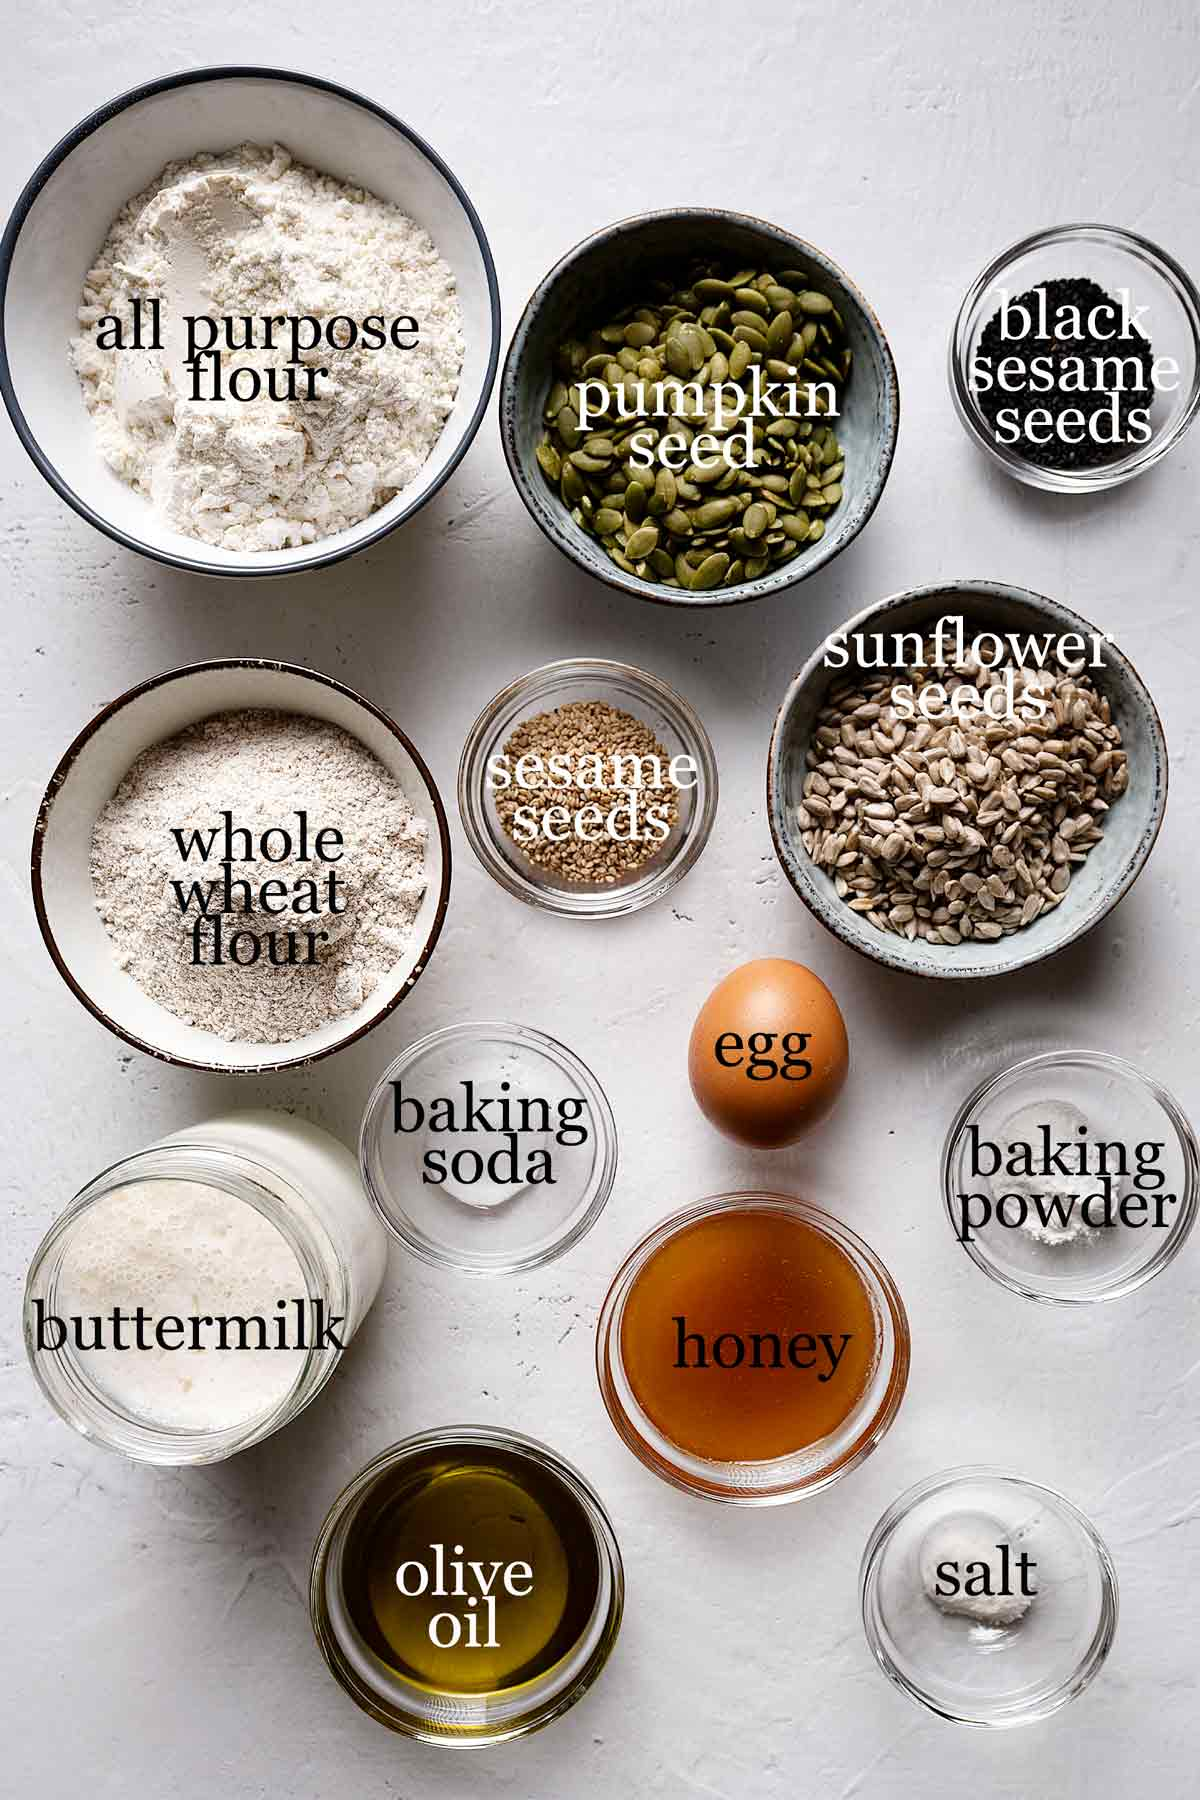 no-knead multiseed bread ingredients.